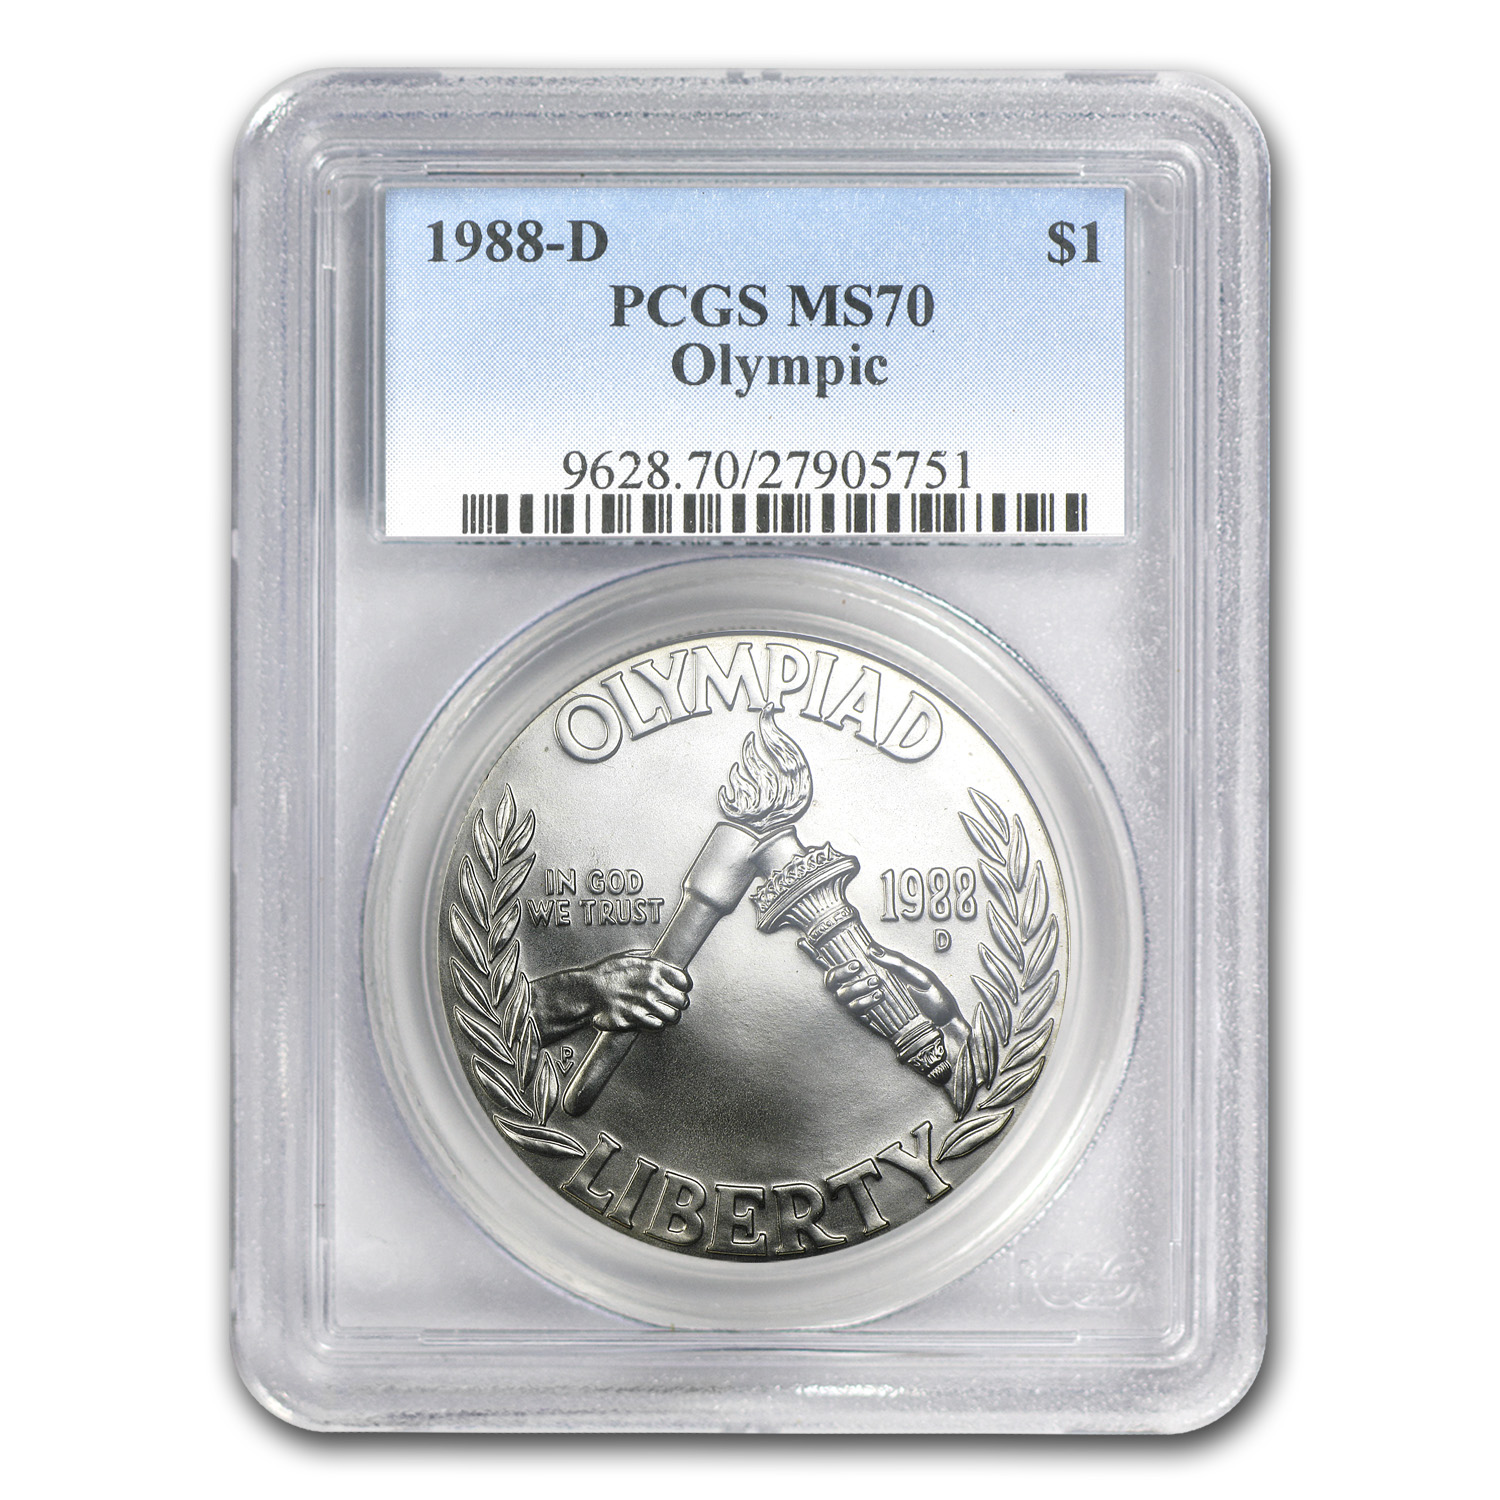 1988-D Olympic $1 Silver Commem MS-70 PCGS